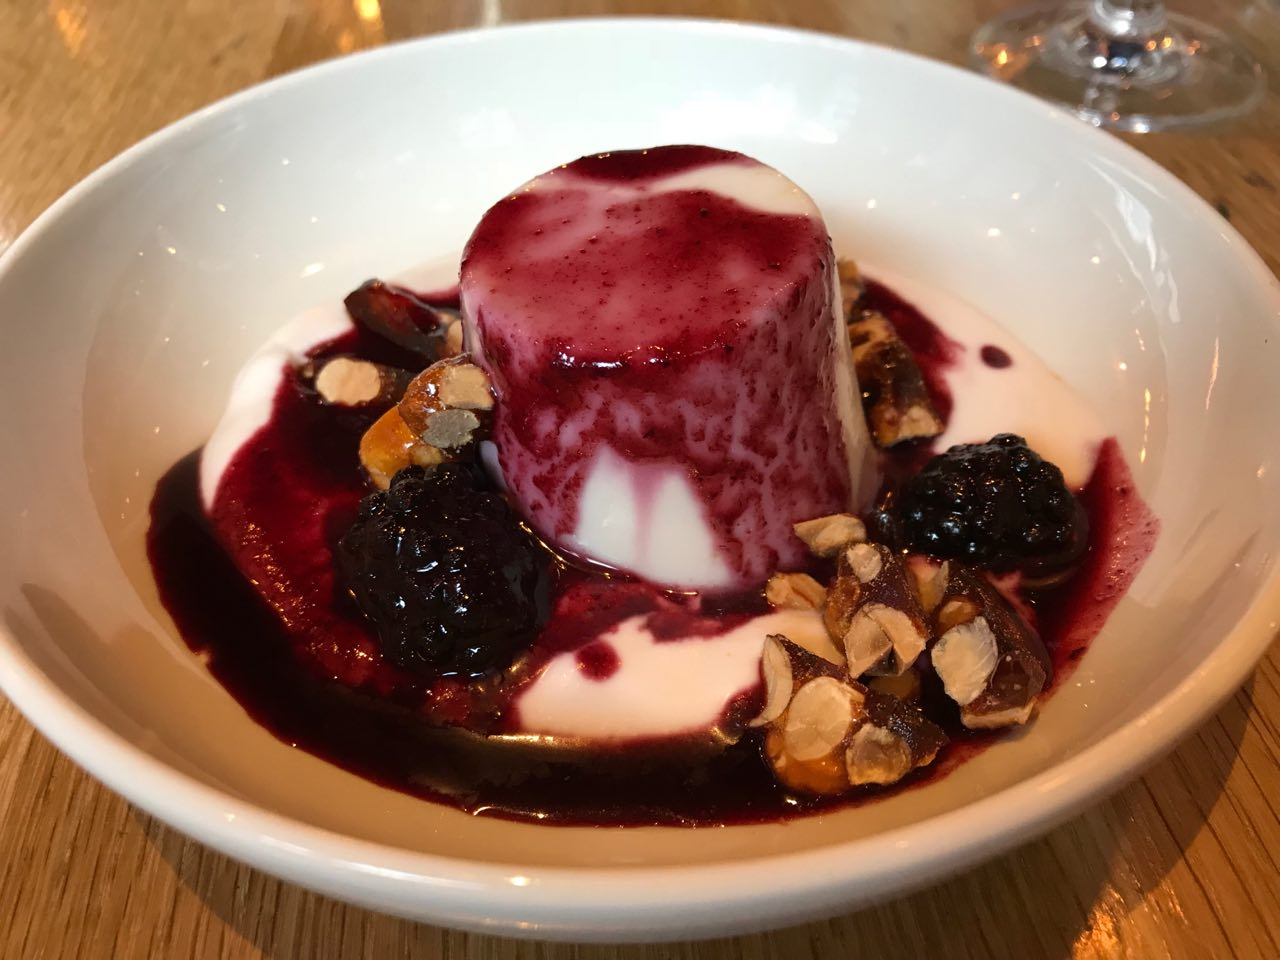 Lori's coconut panna cotta with blackberries and hazelnut brittle